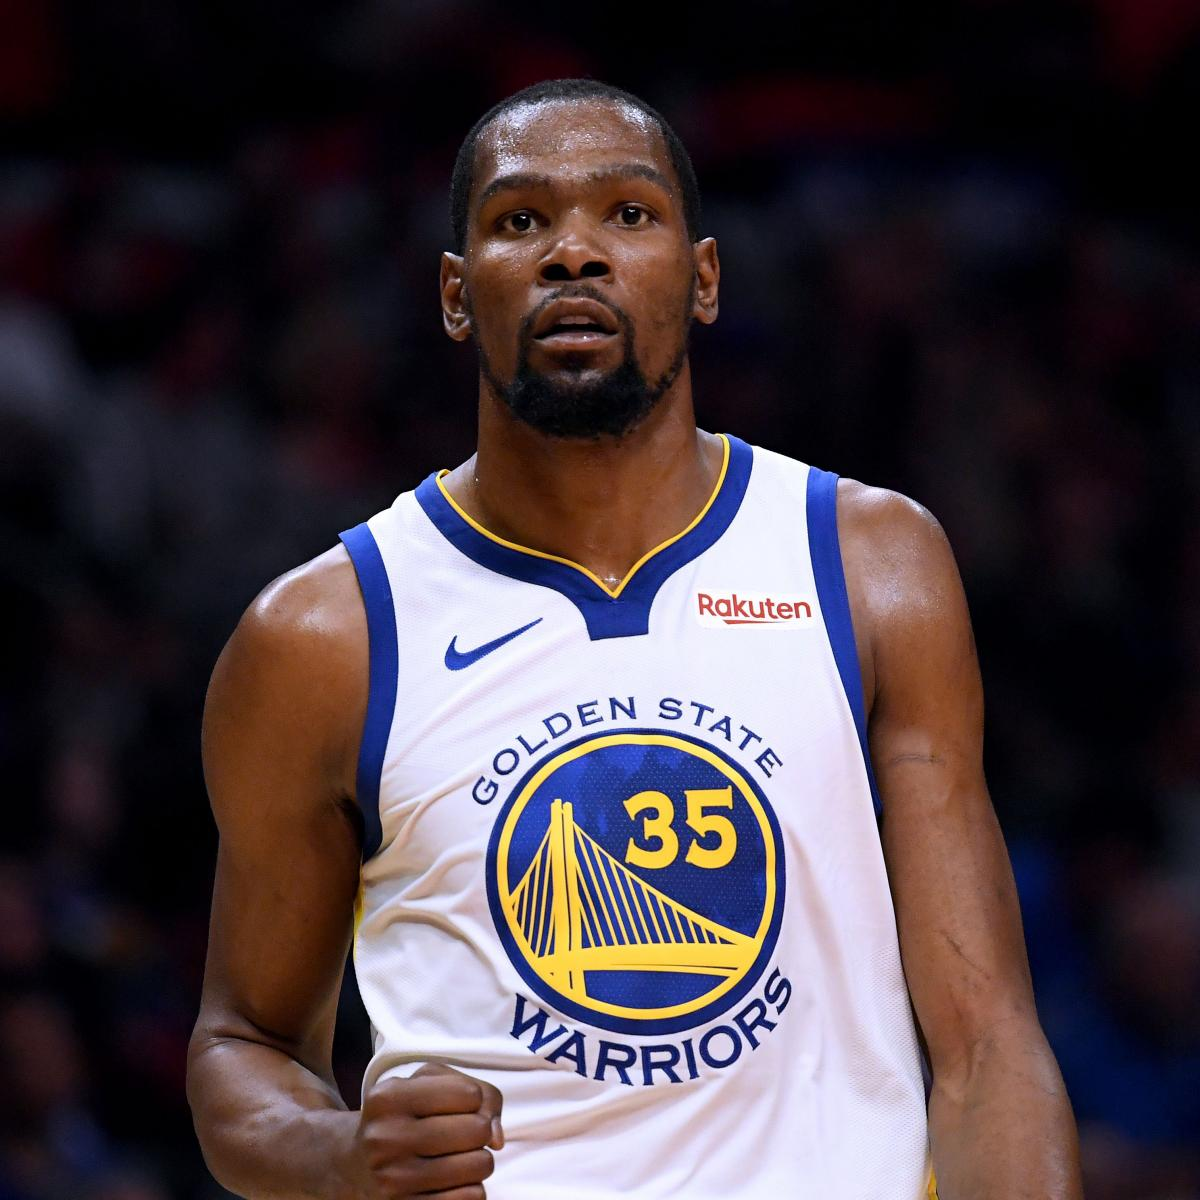 Kevin Durant took his game to another level Thursday and led the Golden State Warriors to a 132-105 victory in Game 3 of their first-round playoff series against the Los Angeles Clippers ...